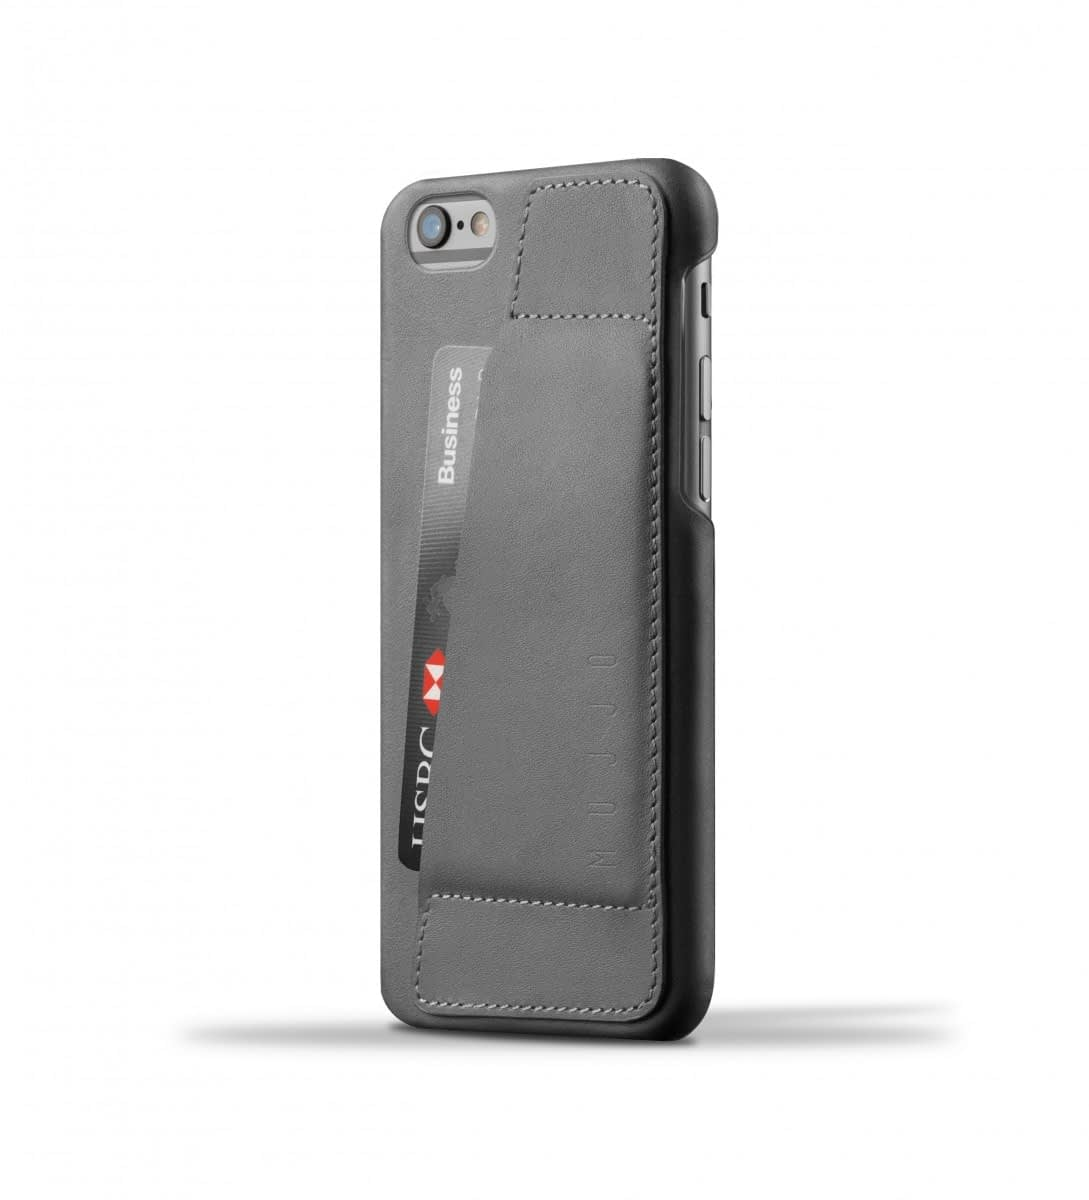 leather wallet case 80 for iphone 6s gray 1089x1200